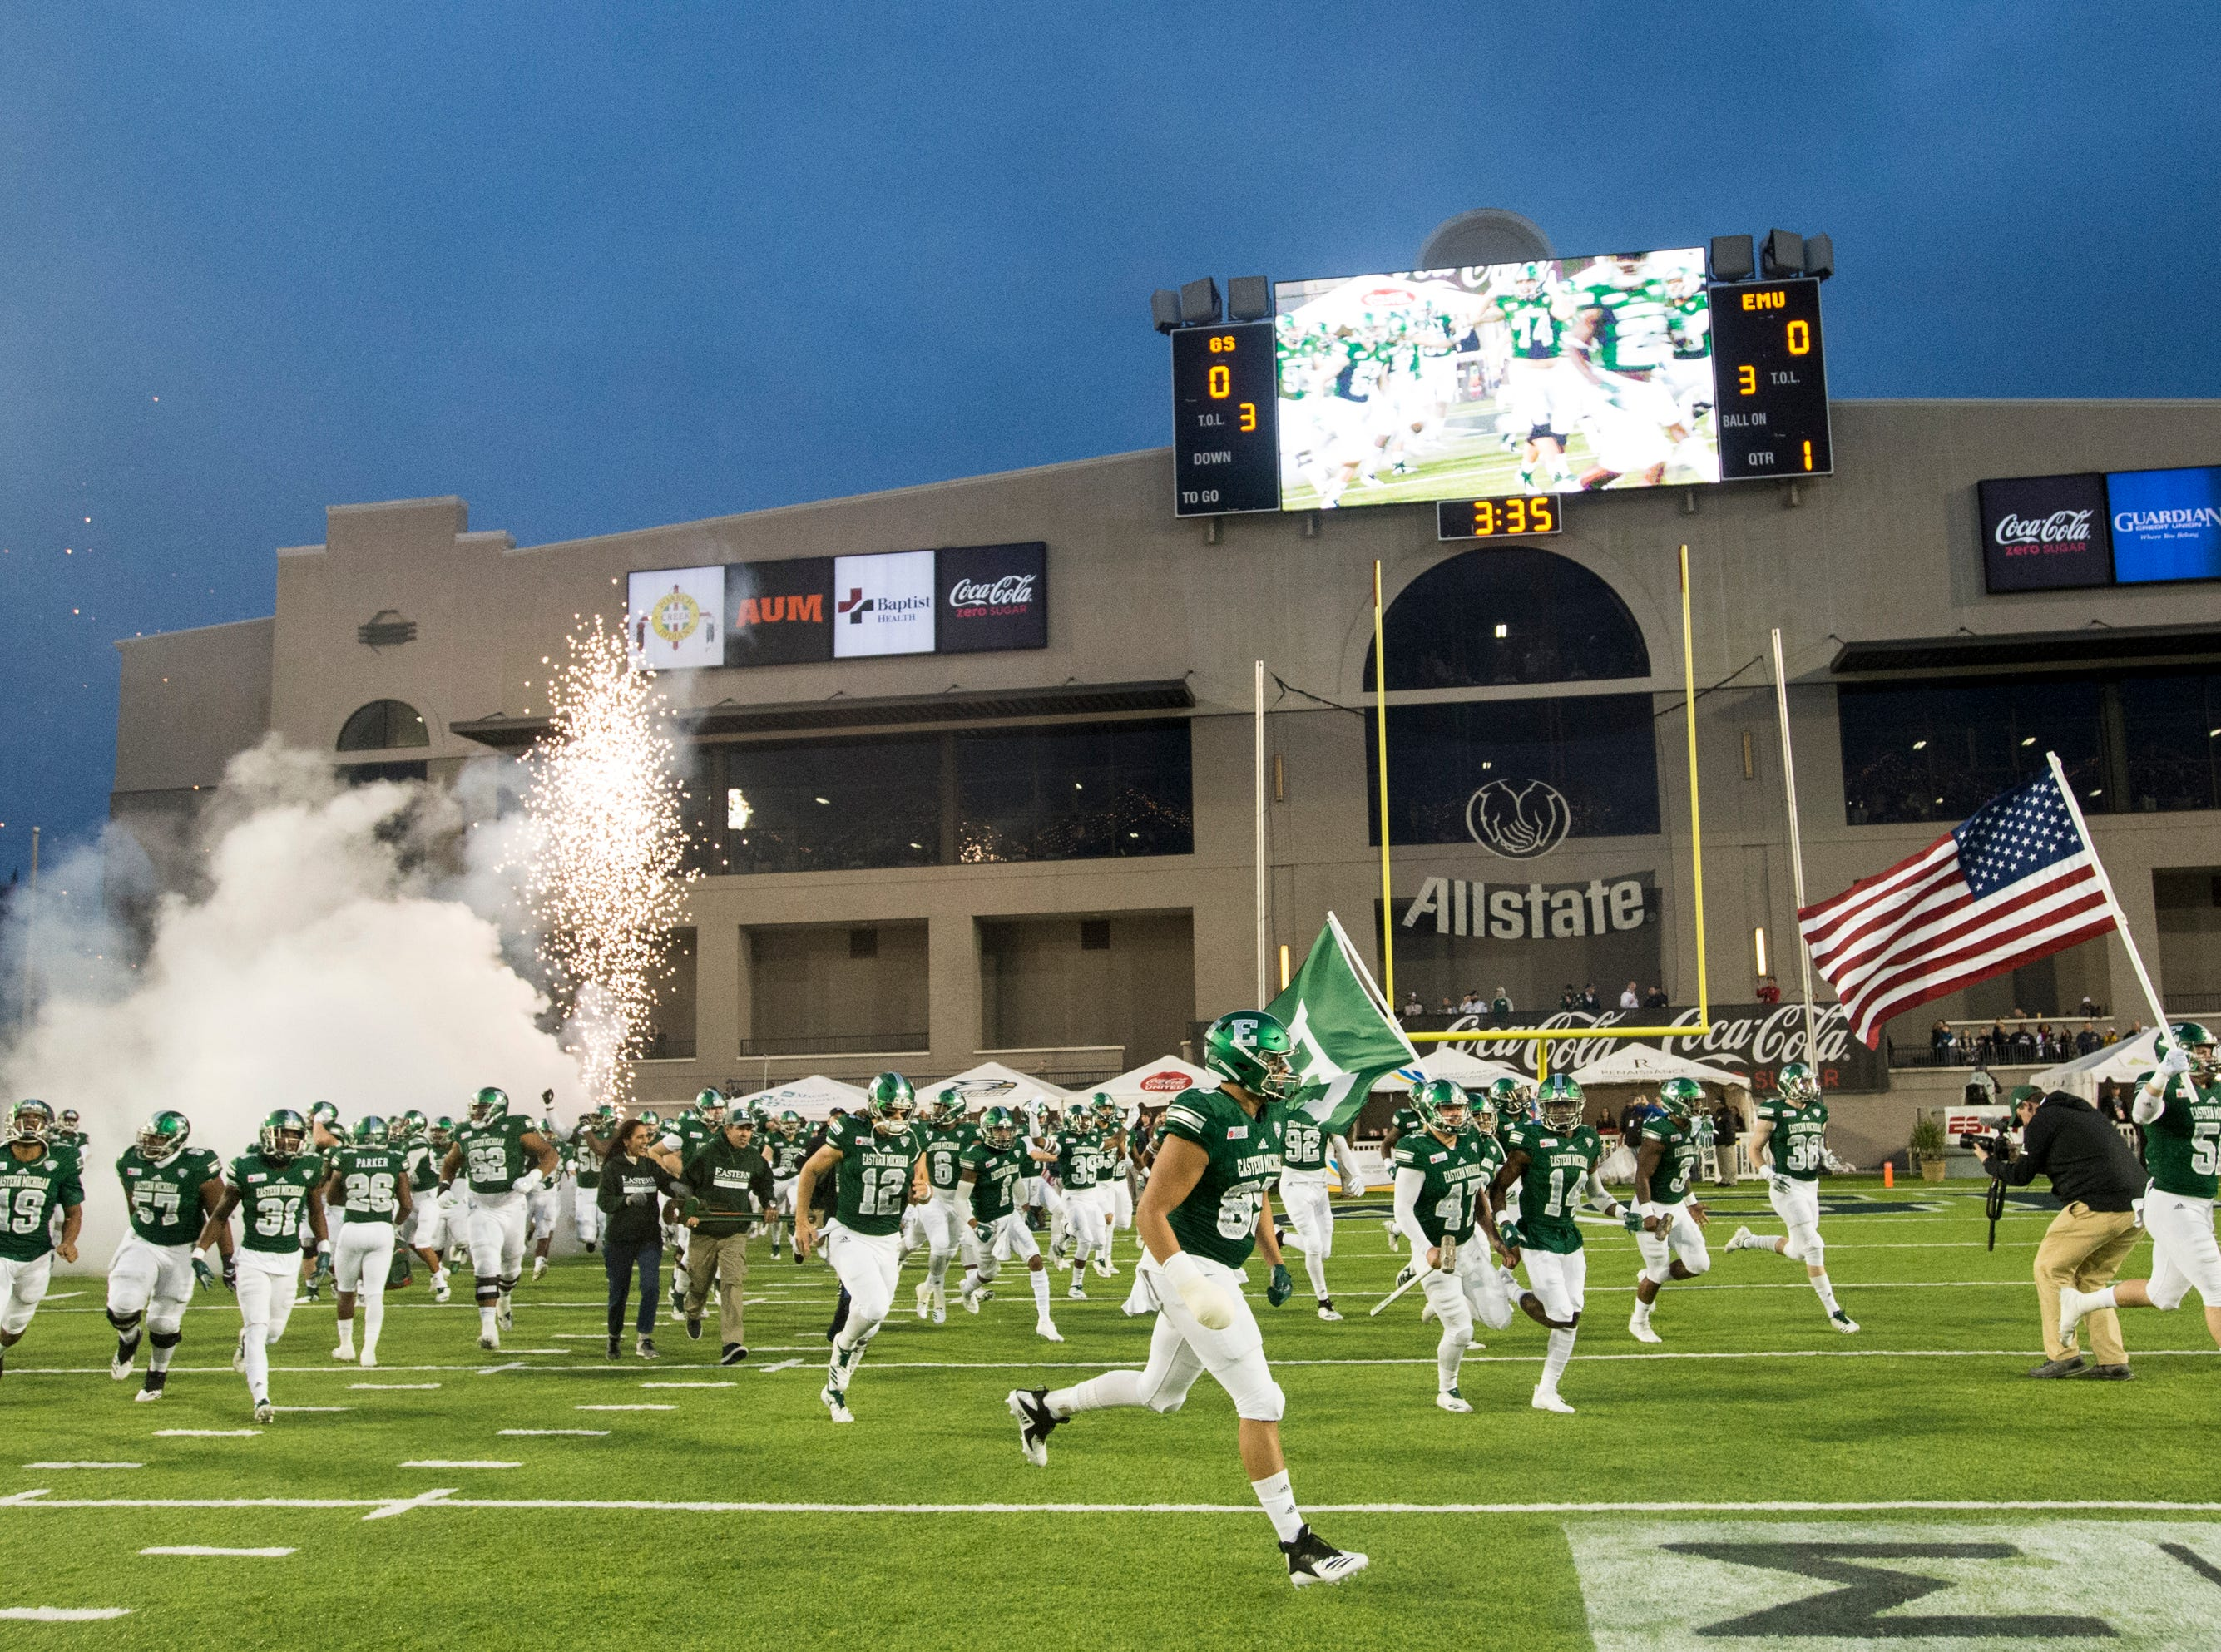 Eastern Michigan's team runs onto the field before the Camellia Bowl at Cramton Bowl in Montgomery, Ala., on Saturday, Dec. 15, 2018. Georgia Southern leads Eastern Michigan 17-7 at halftime.